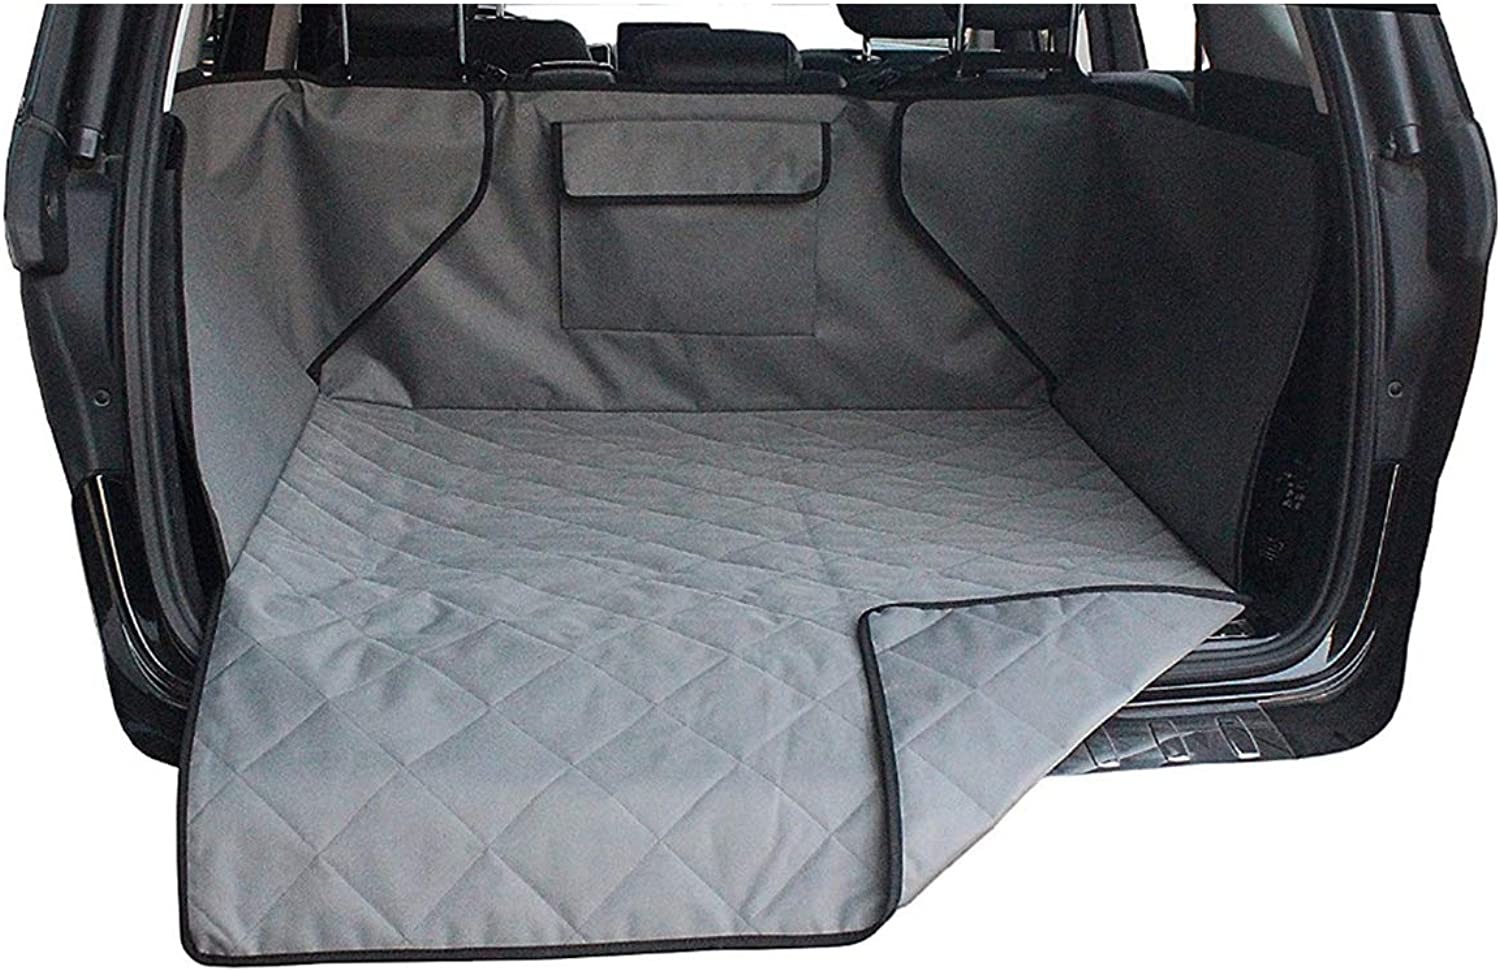 Queenbox Waterproof Quilted Cargo Pet Cover & Predector, Non Slip Backing Cargo Liner Cover for SUVs and Cars, Grey